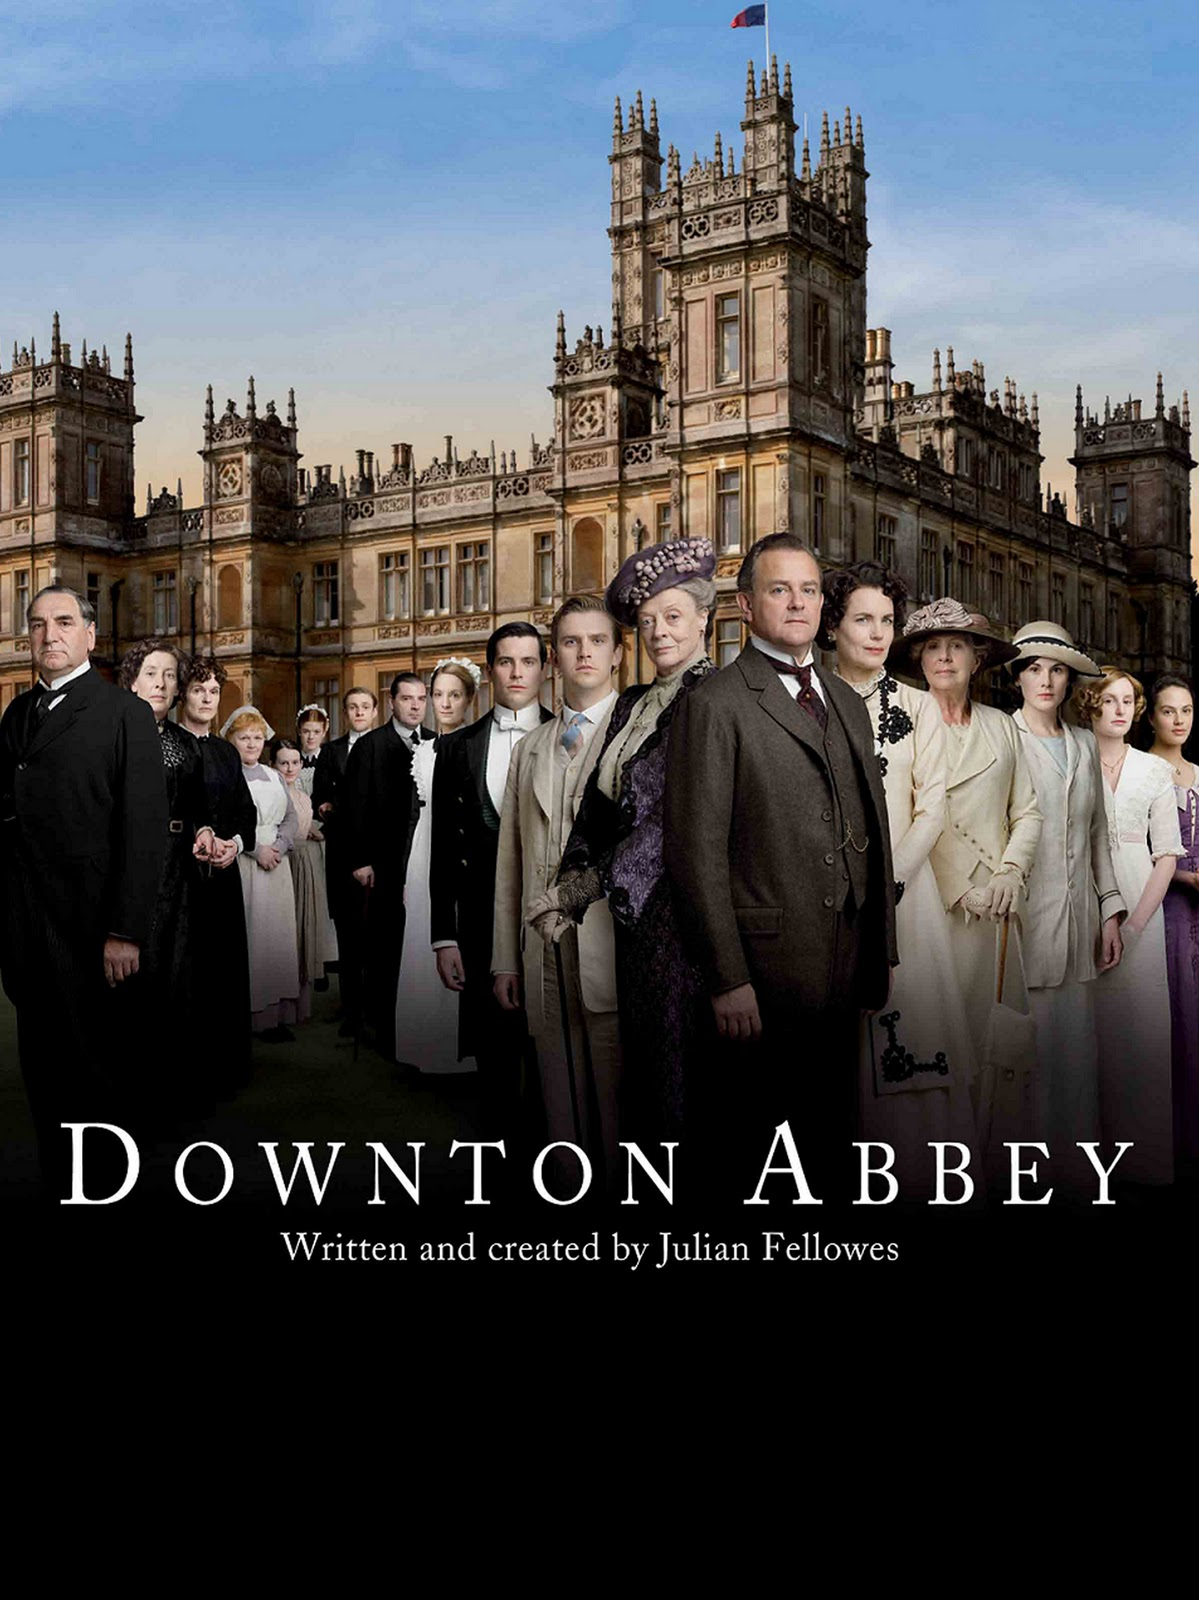 abbey downton abbey cast downton abbey photos downton abbey pictures